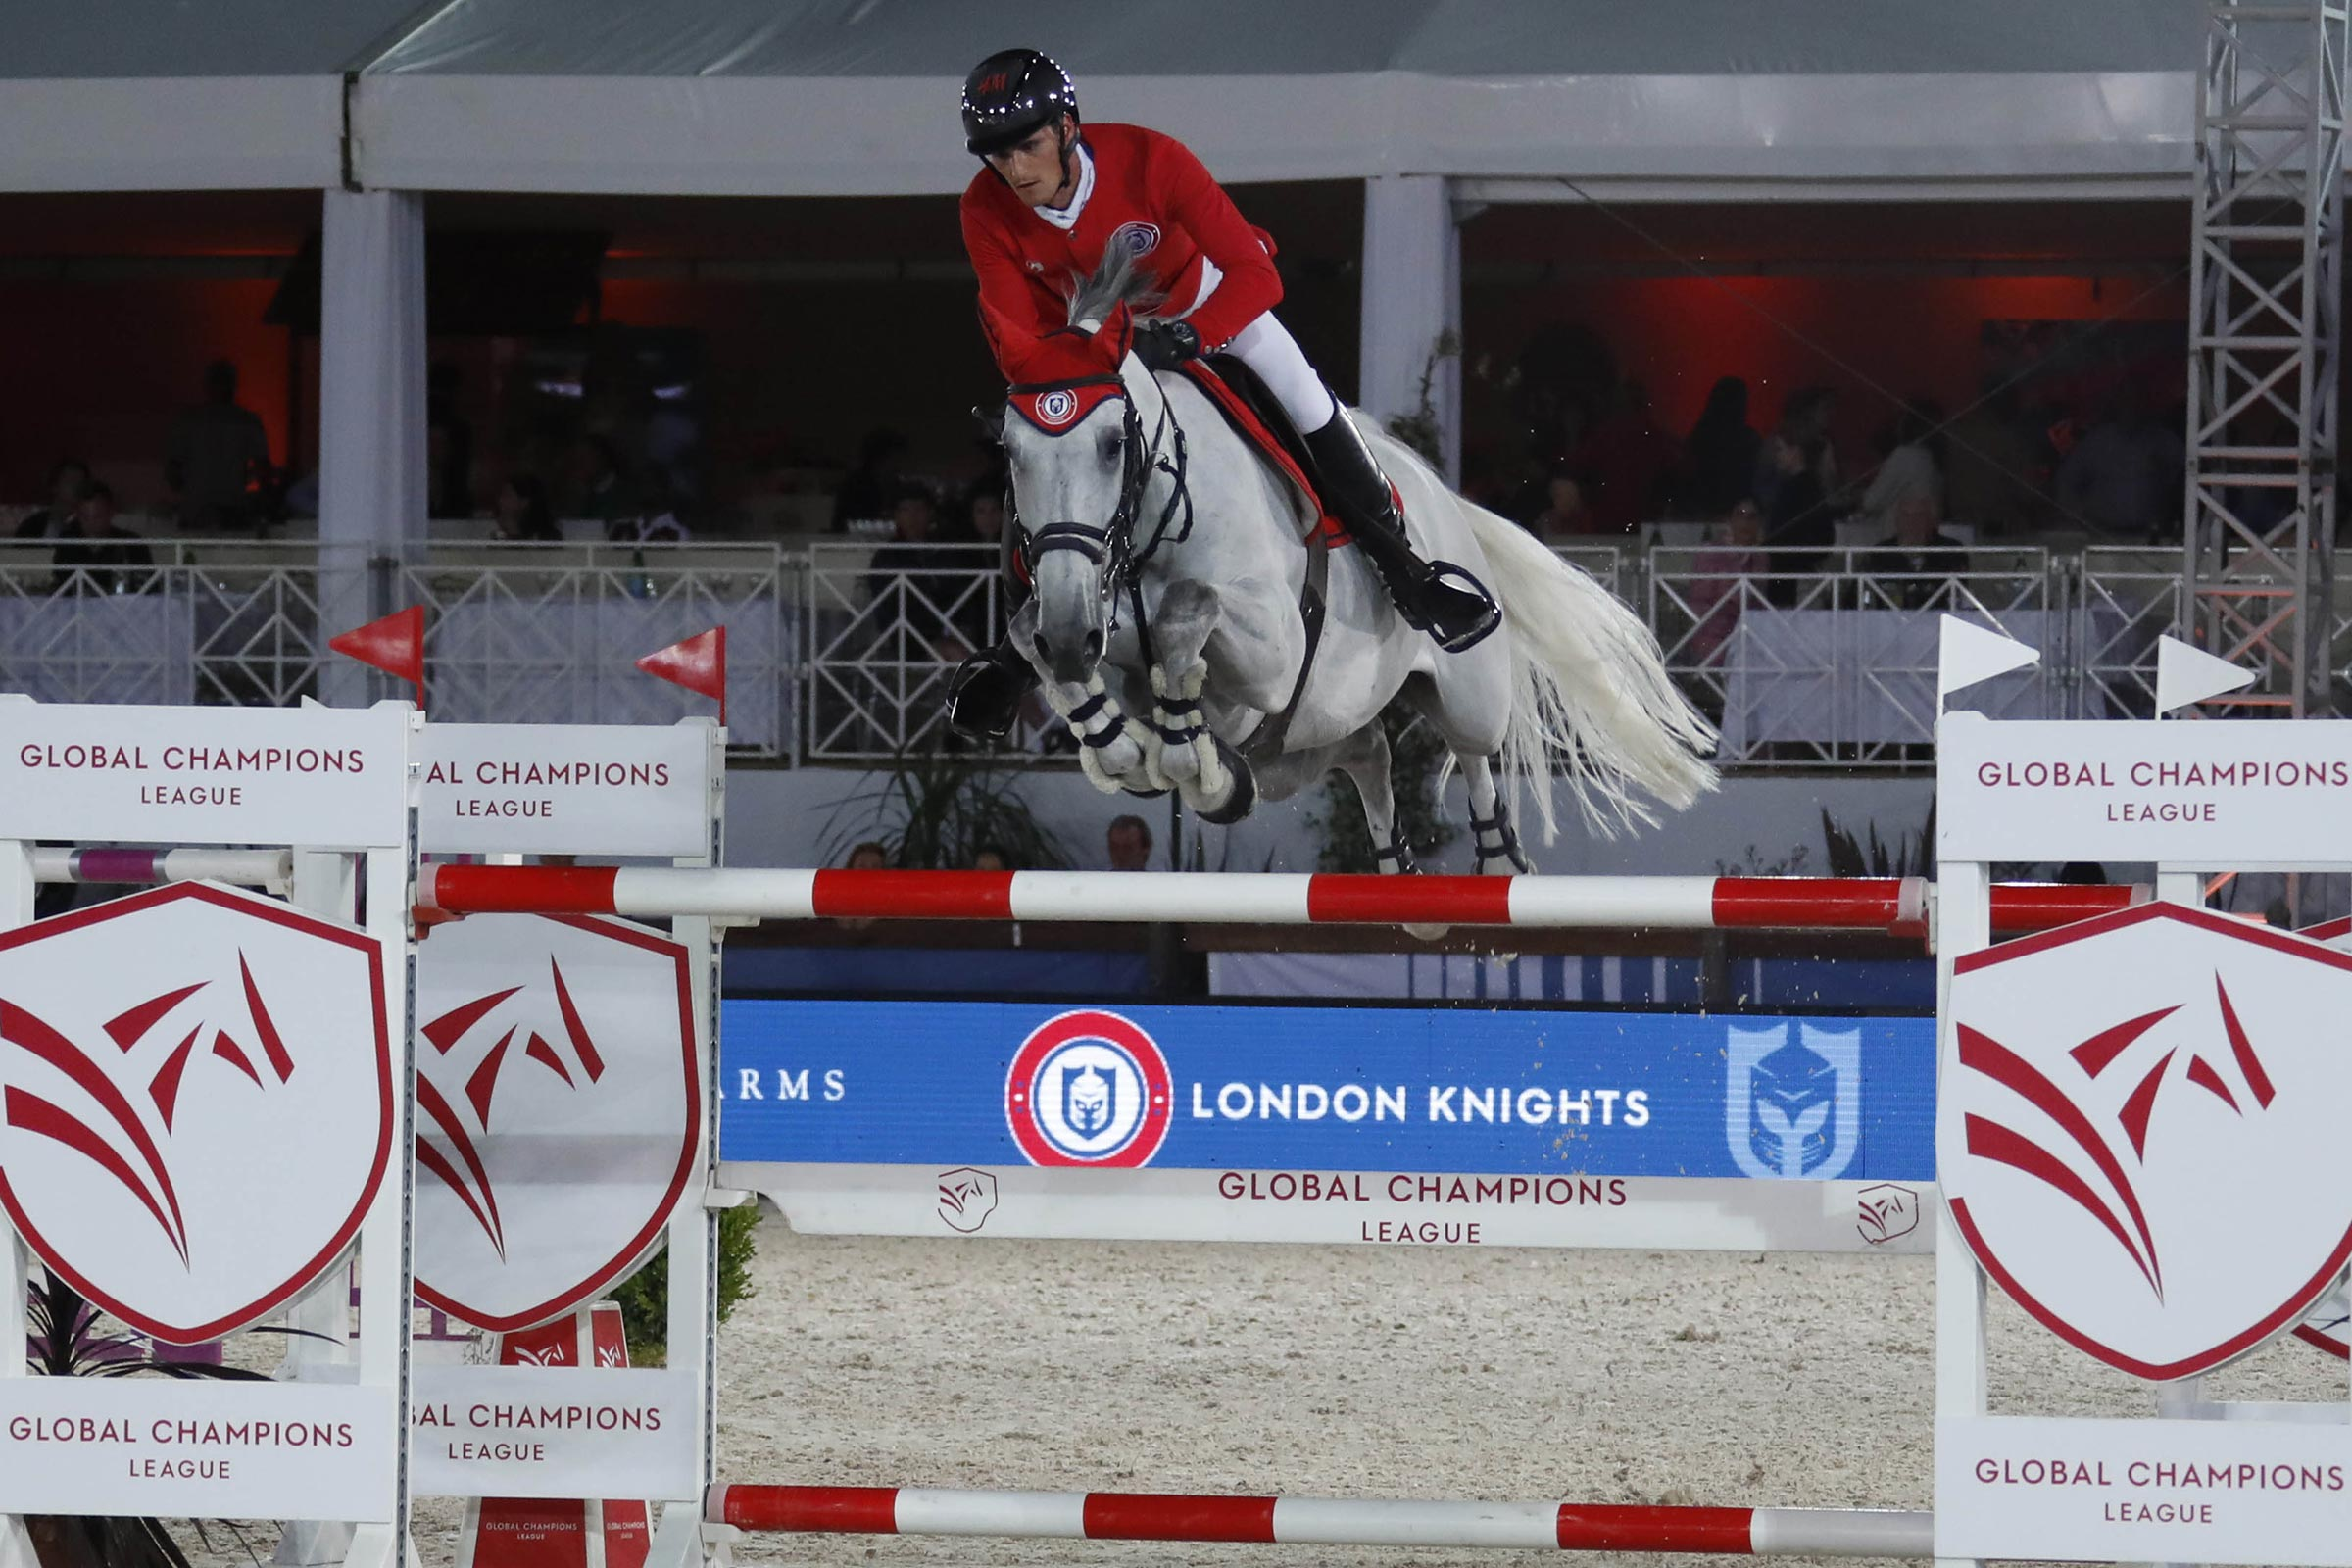 Team London Knights - Olivier Philippaerts (BEL) on H&M Cue Channa ph.Stefano Grasso/GCL CANNES 2019 DOWNLOAD